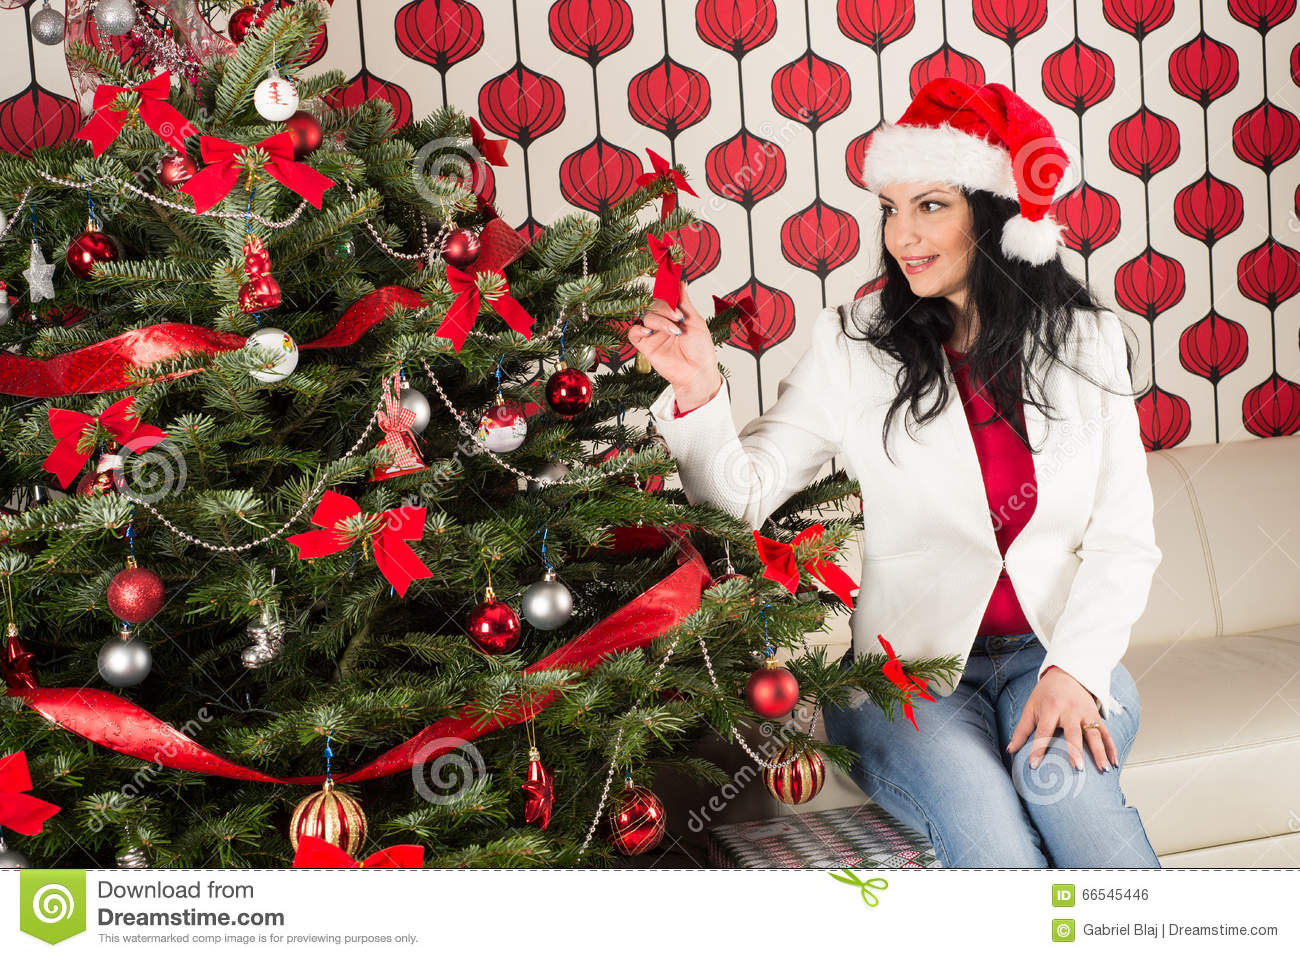 Cheerful woman with natural chrismas tree stock photo for Cheerful nature